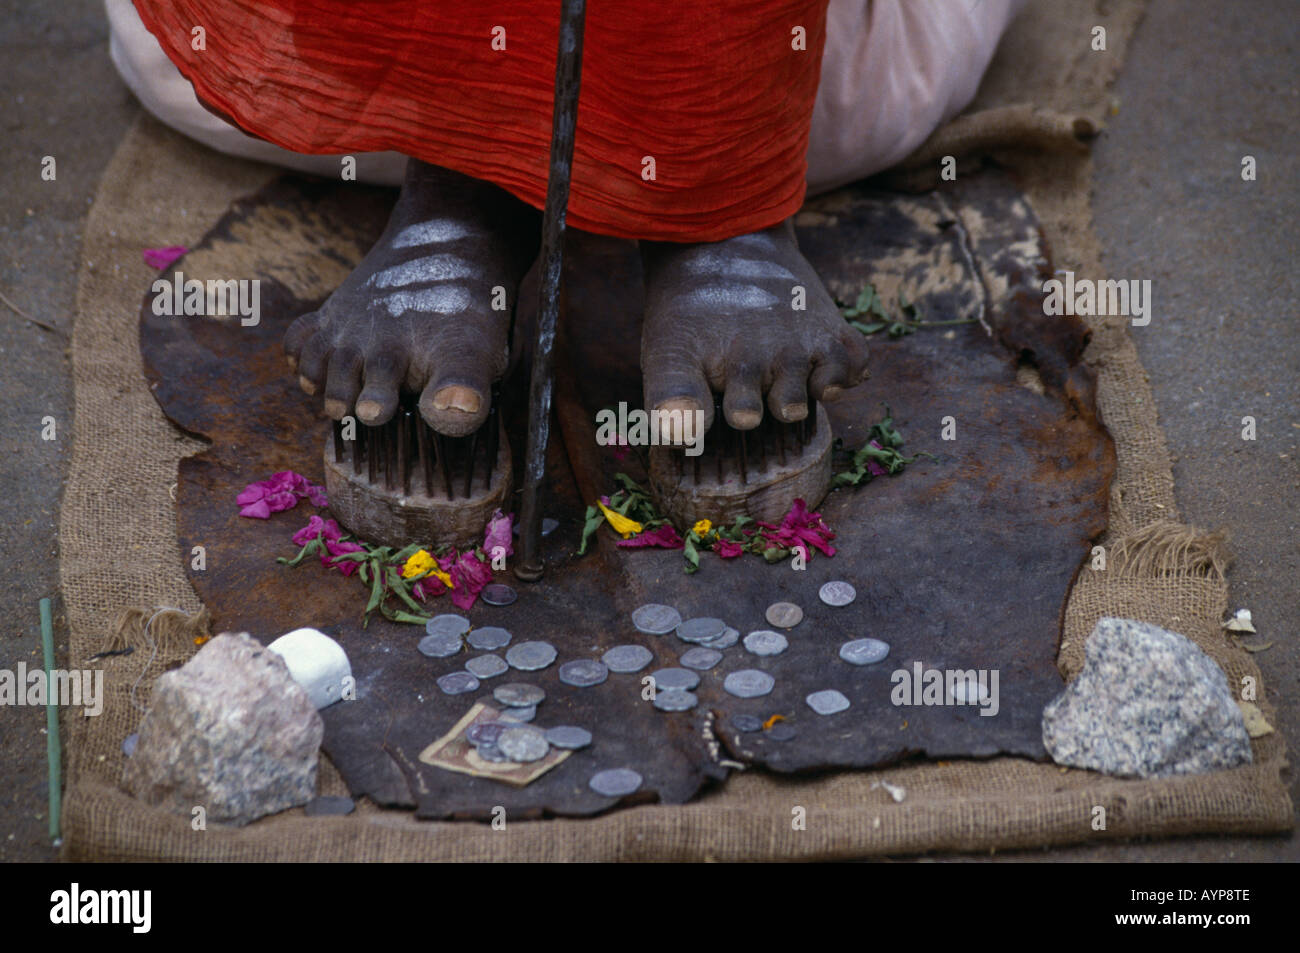 INDIA South Asia Karnataka Mysore Religion Hindu Cropped shot of Sadu Holy Man standing on nails with coins given by passers by - Stock Image